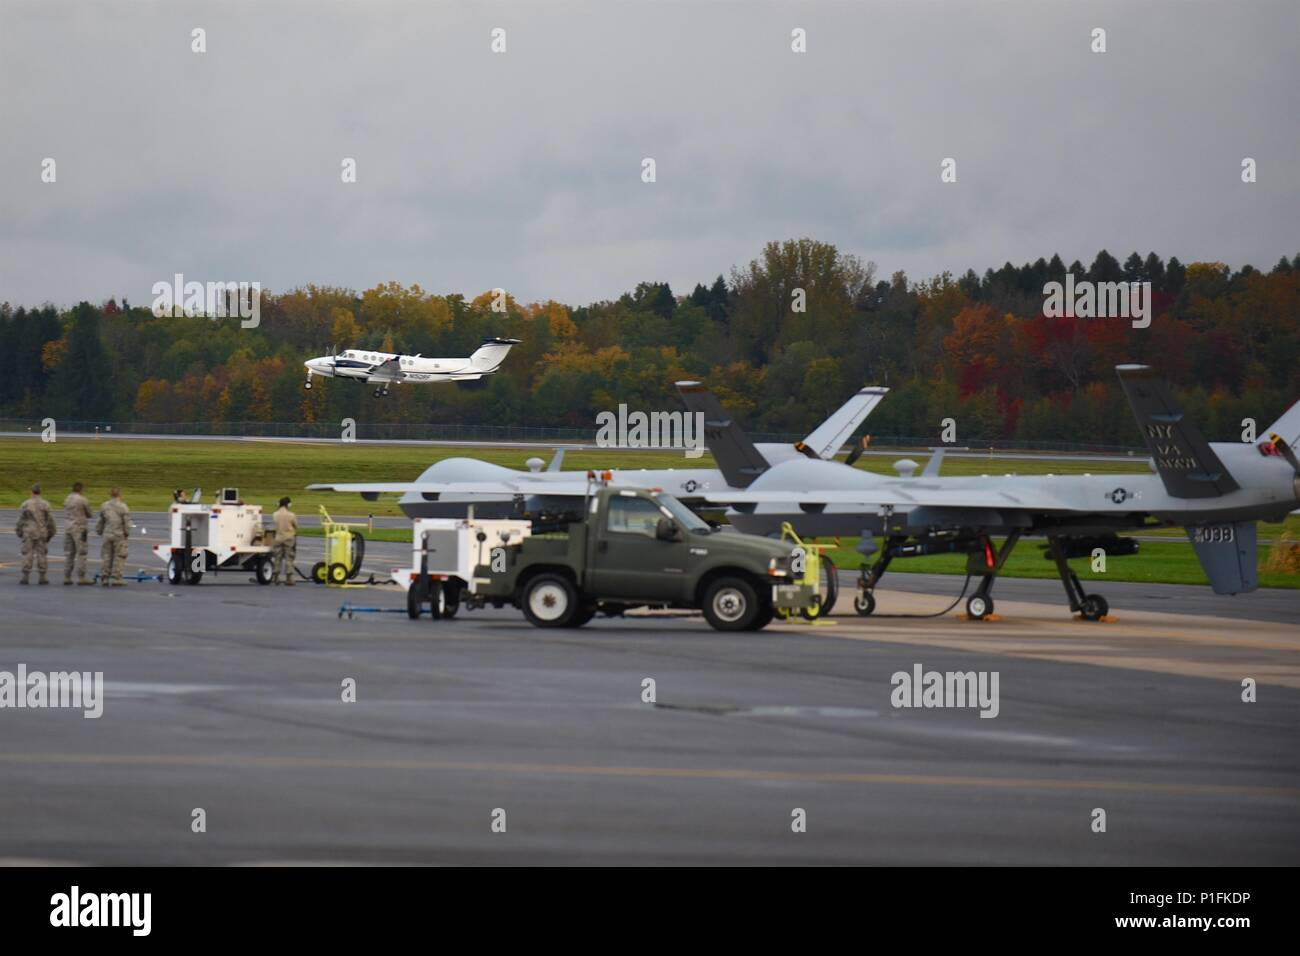 Syracuse, NY – Members of the 174th Attack Wing Maintenance Group prepare to launch remotely piloted MQ-9 Reapers for a routine training  mission on October 23, 2016. The MQ-9 is a long-endurance aircraft whose primary mission is to provide real-time intelligence, surveillance and reconnaissance (ISR) to military ground commanders. (U.S. Air National Guard Photo by Master Sgt. Eric Miller/released) - Stock Image